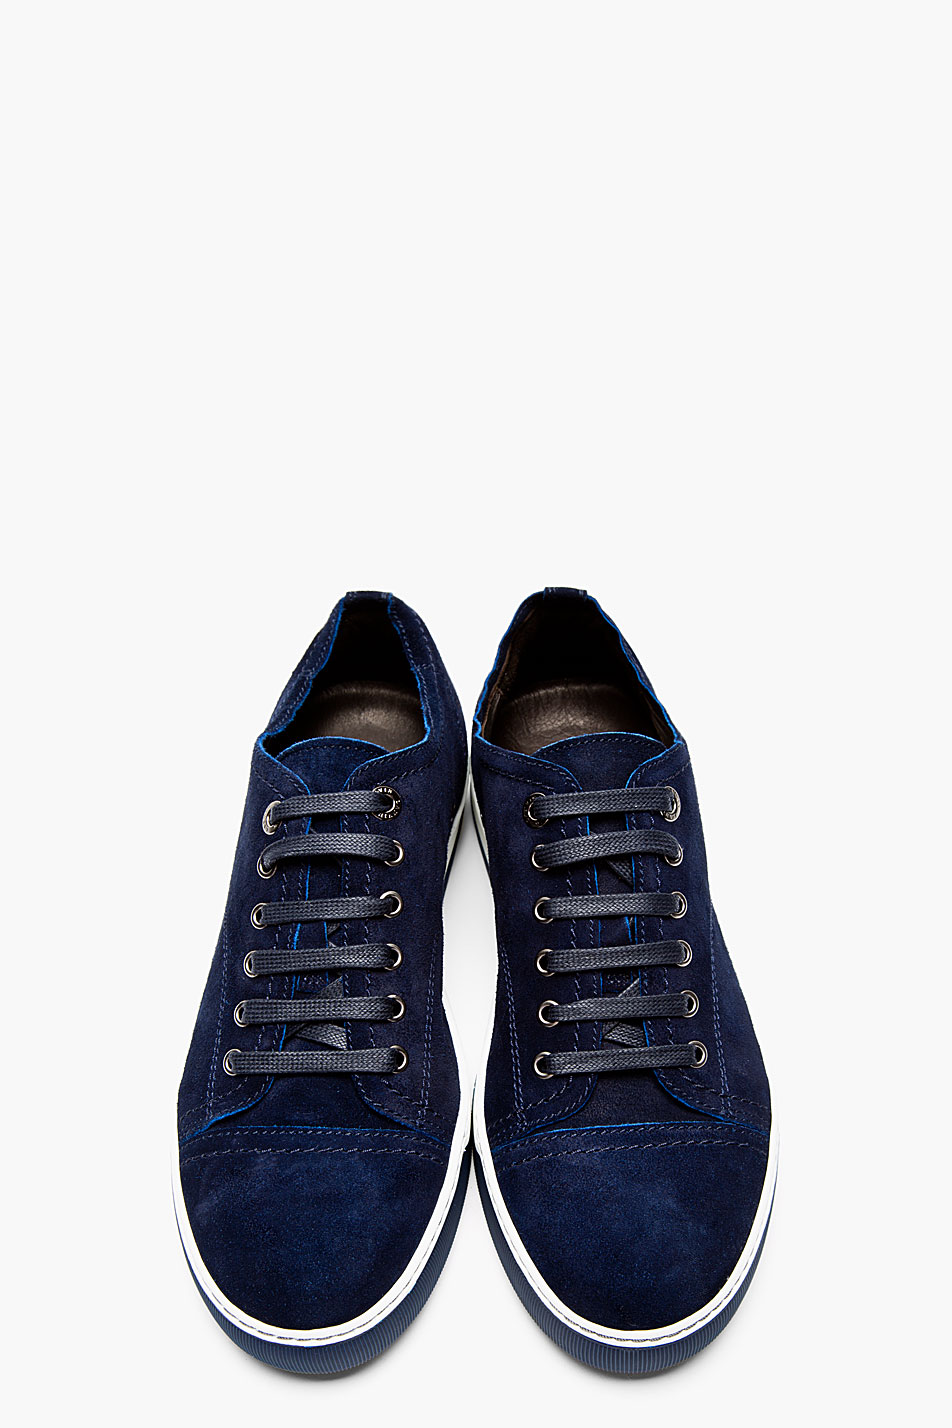 lanvin navy suede classic tennis sneakers in blue for